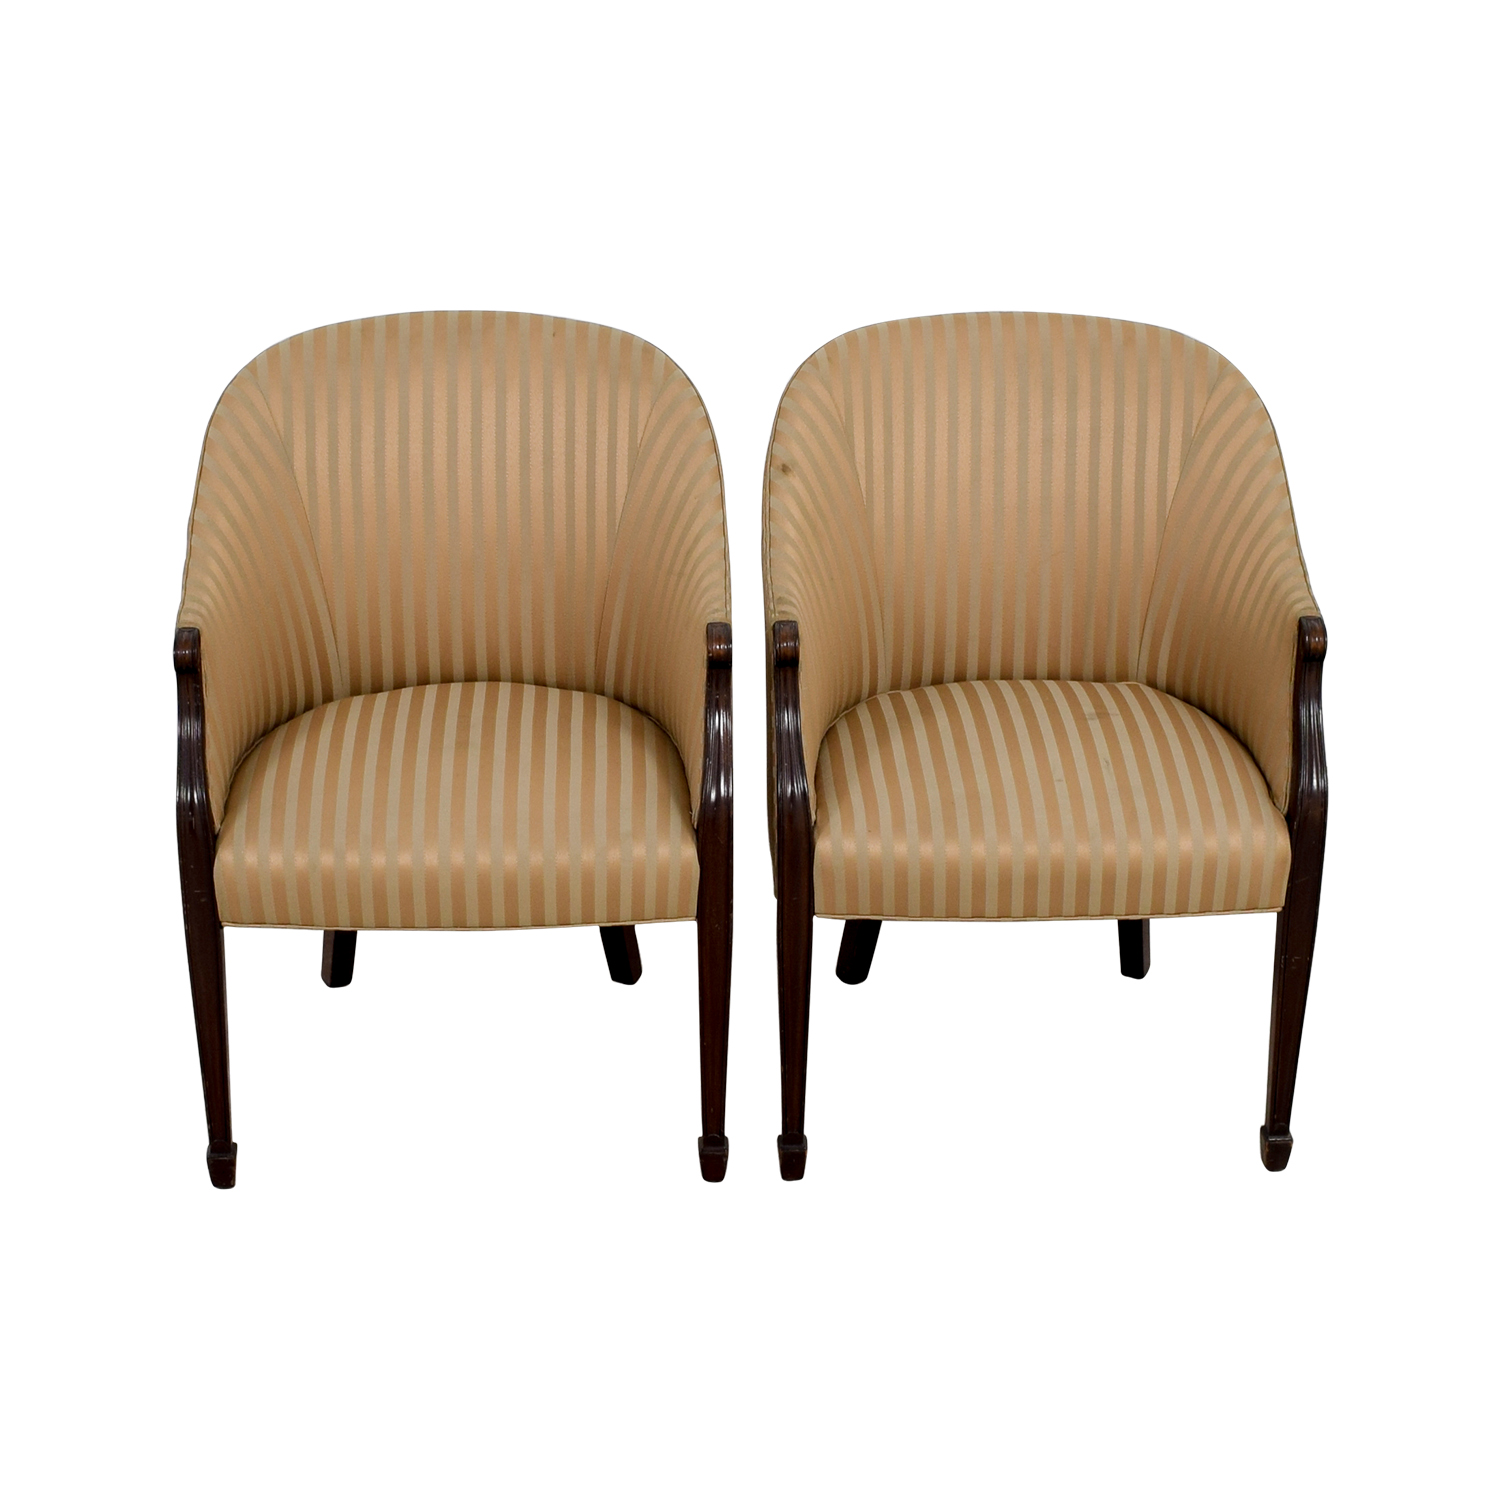 Gold Accent Chairs 90 Off Paoli Paoli Gold Striped Accent Chairs Chairs